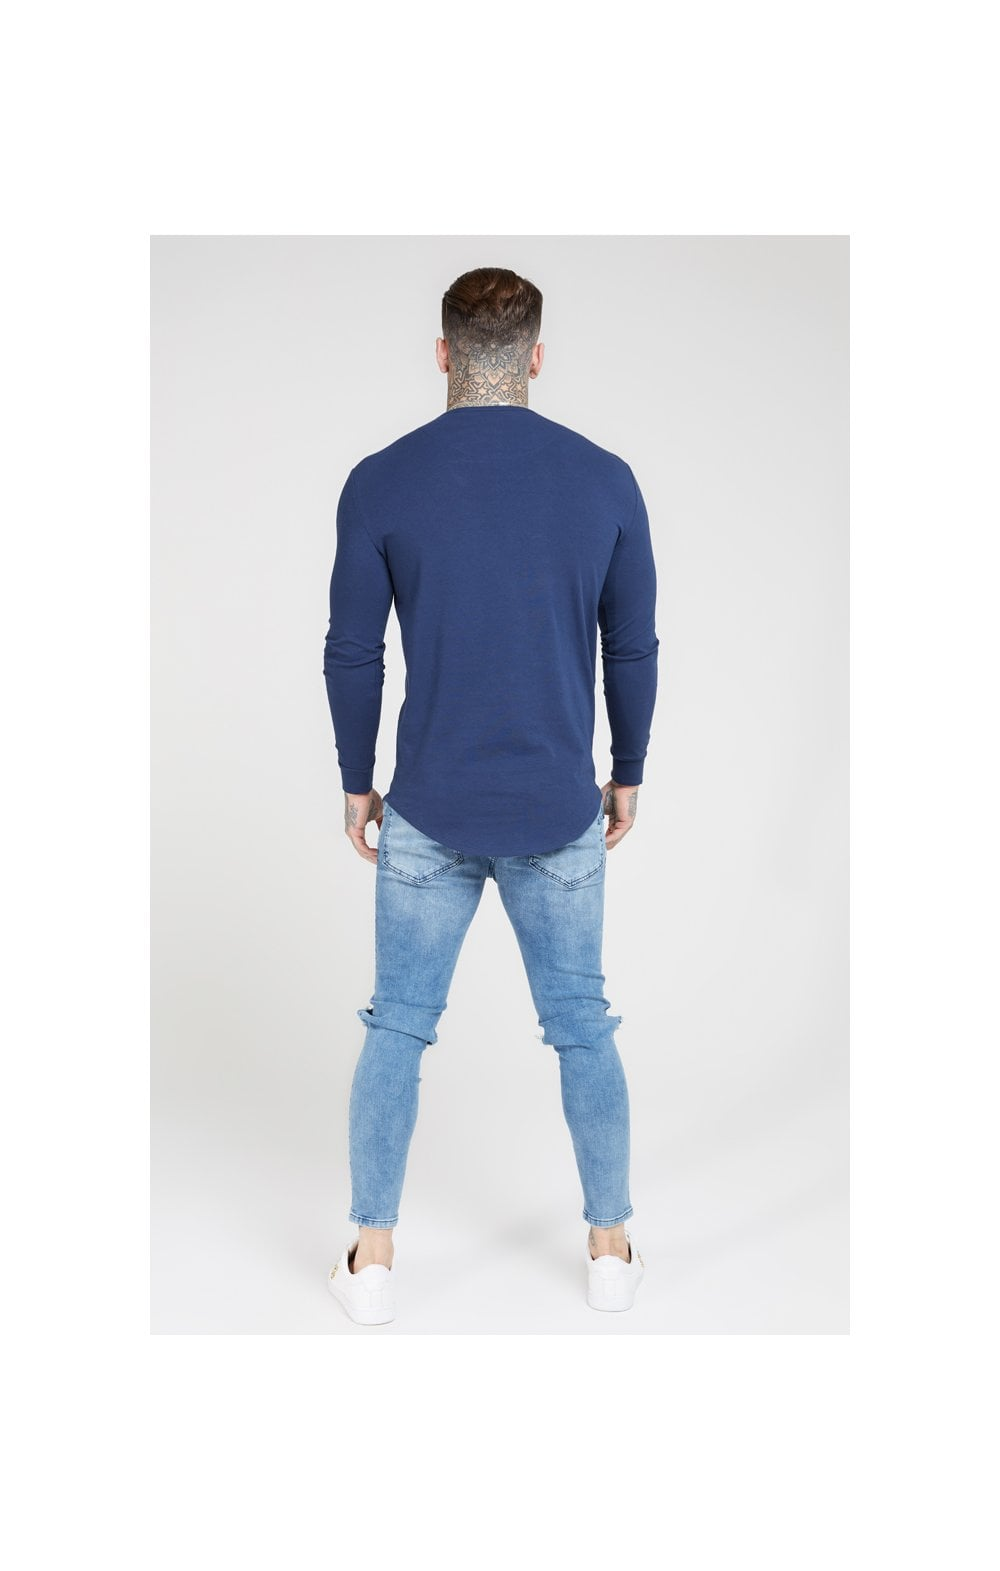 SikSilk L/S Core Gym Tee – Navy (4)